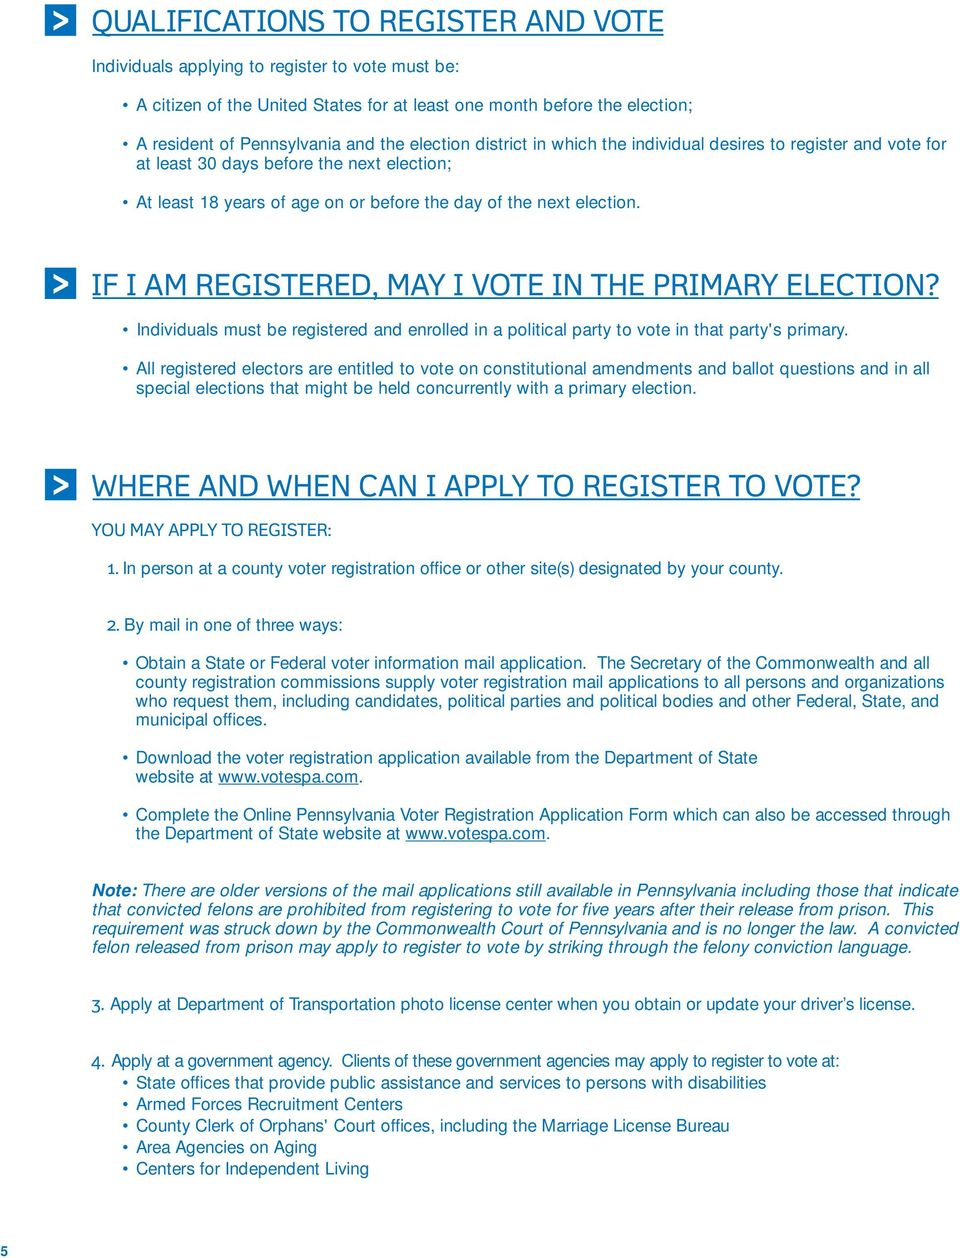 IF I AM REGISTERED, MAY I VOTE IN THE PRIMARY ELECTION? Individuals must be registered and enrolled in a political party to vote in that party's primary.